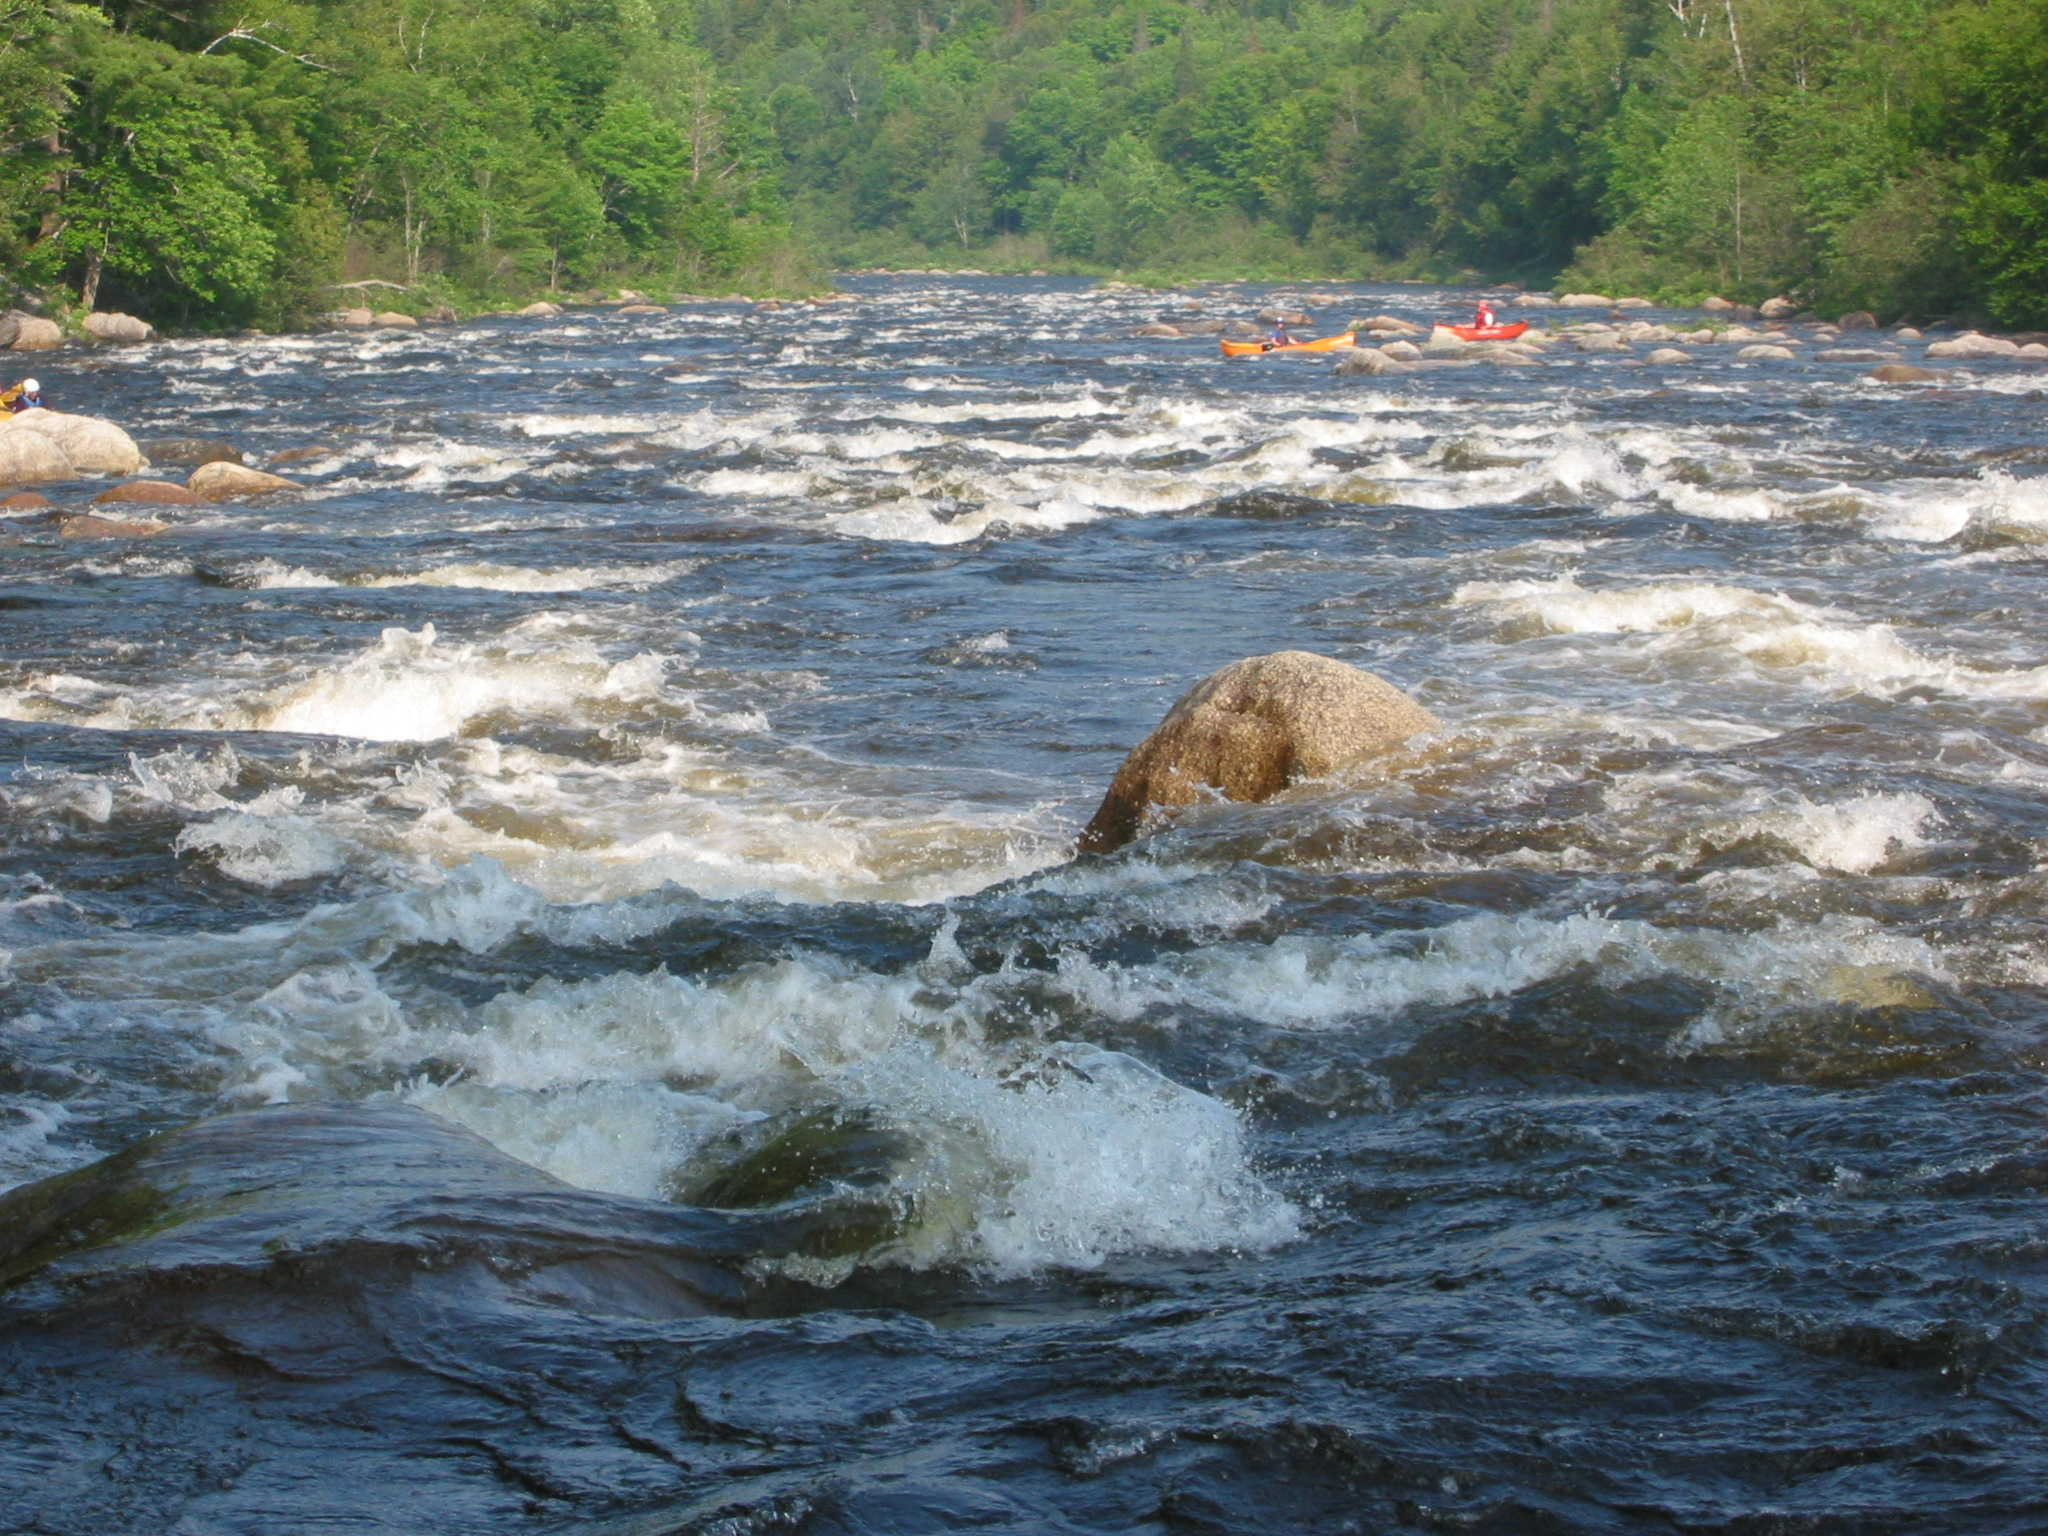 Typical rapids on the Dead at 2,400 cfs